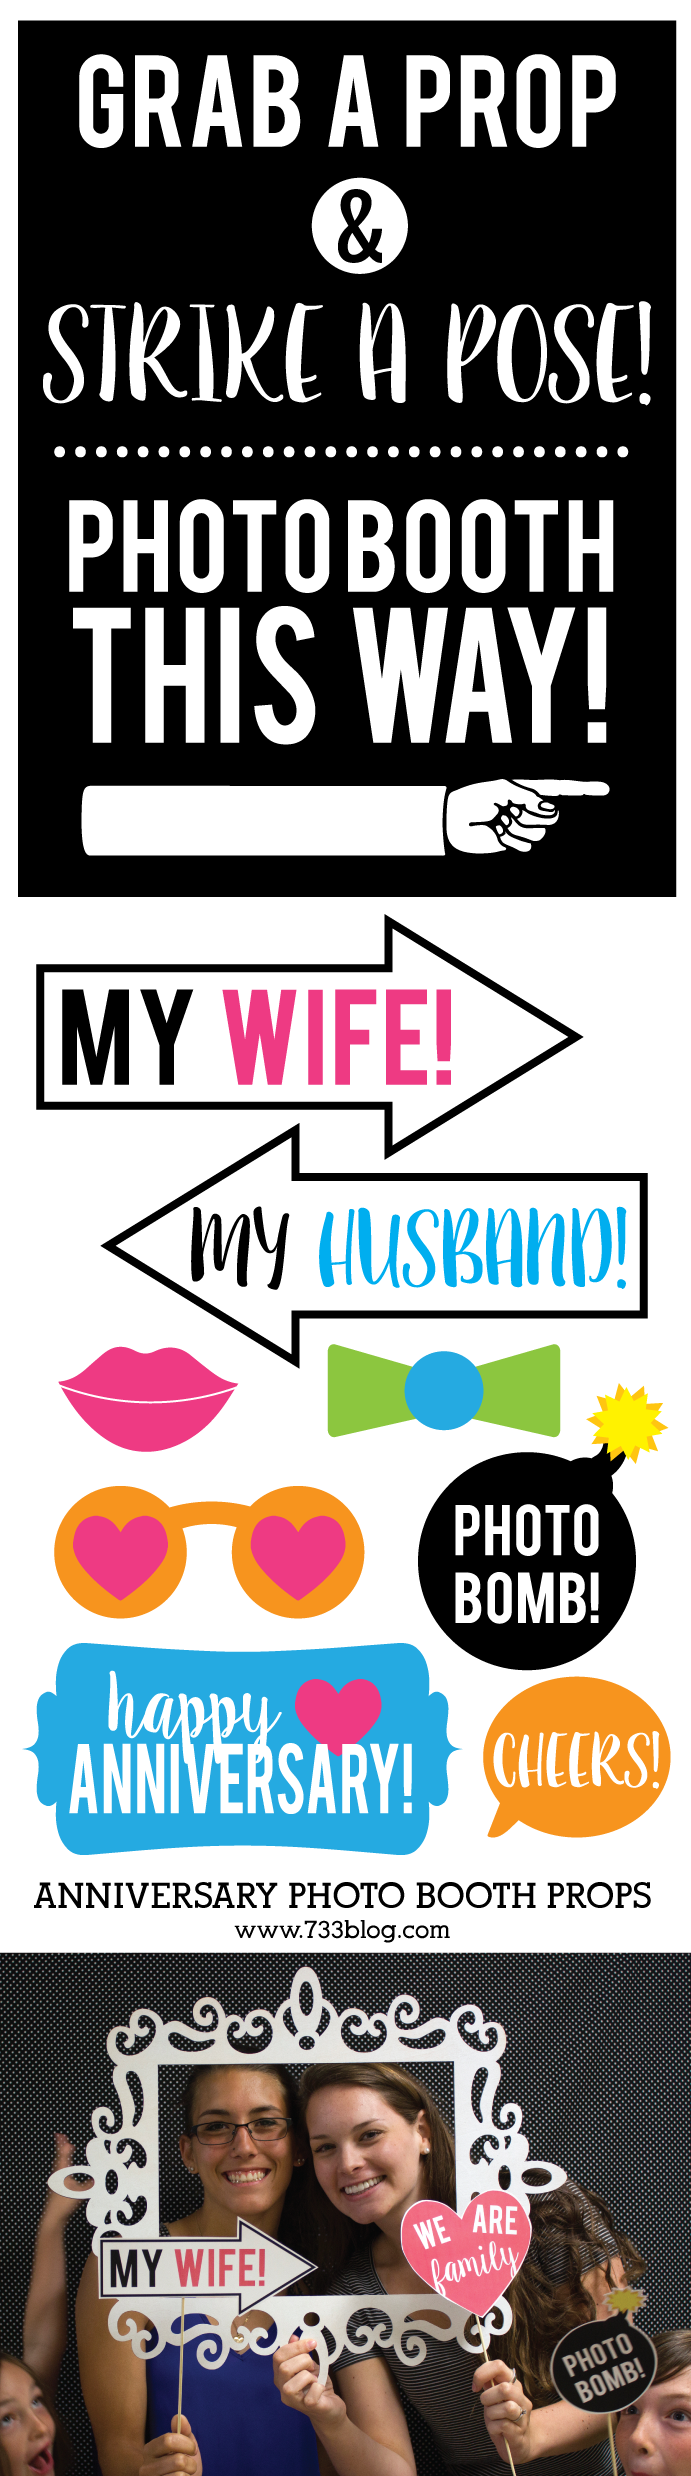 Printable Anniversary Photo Booth Props - includes 15 props and a fun photo booth sign!